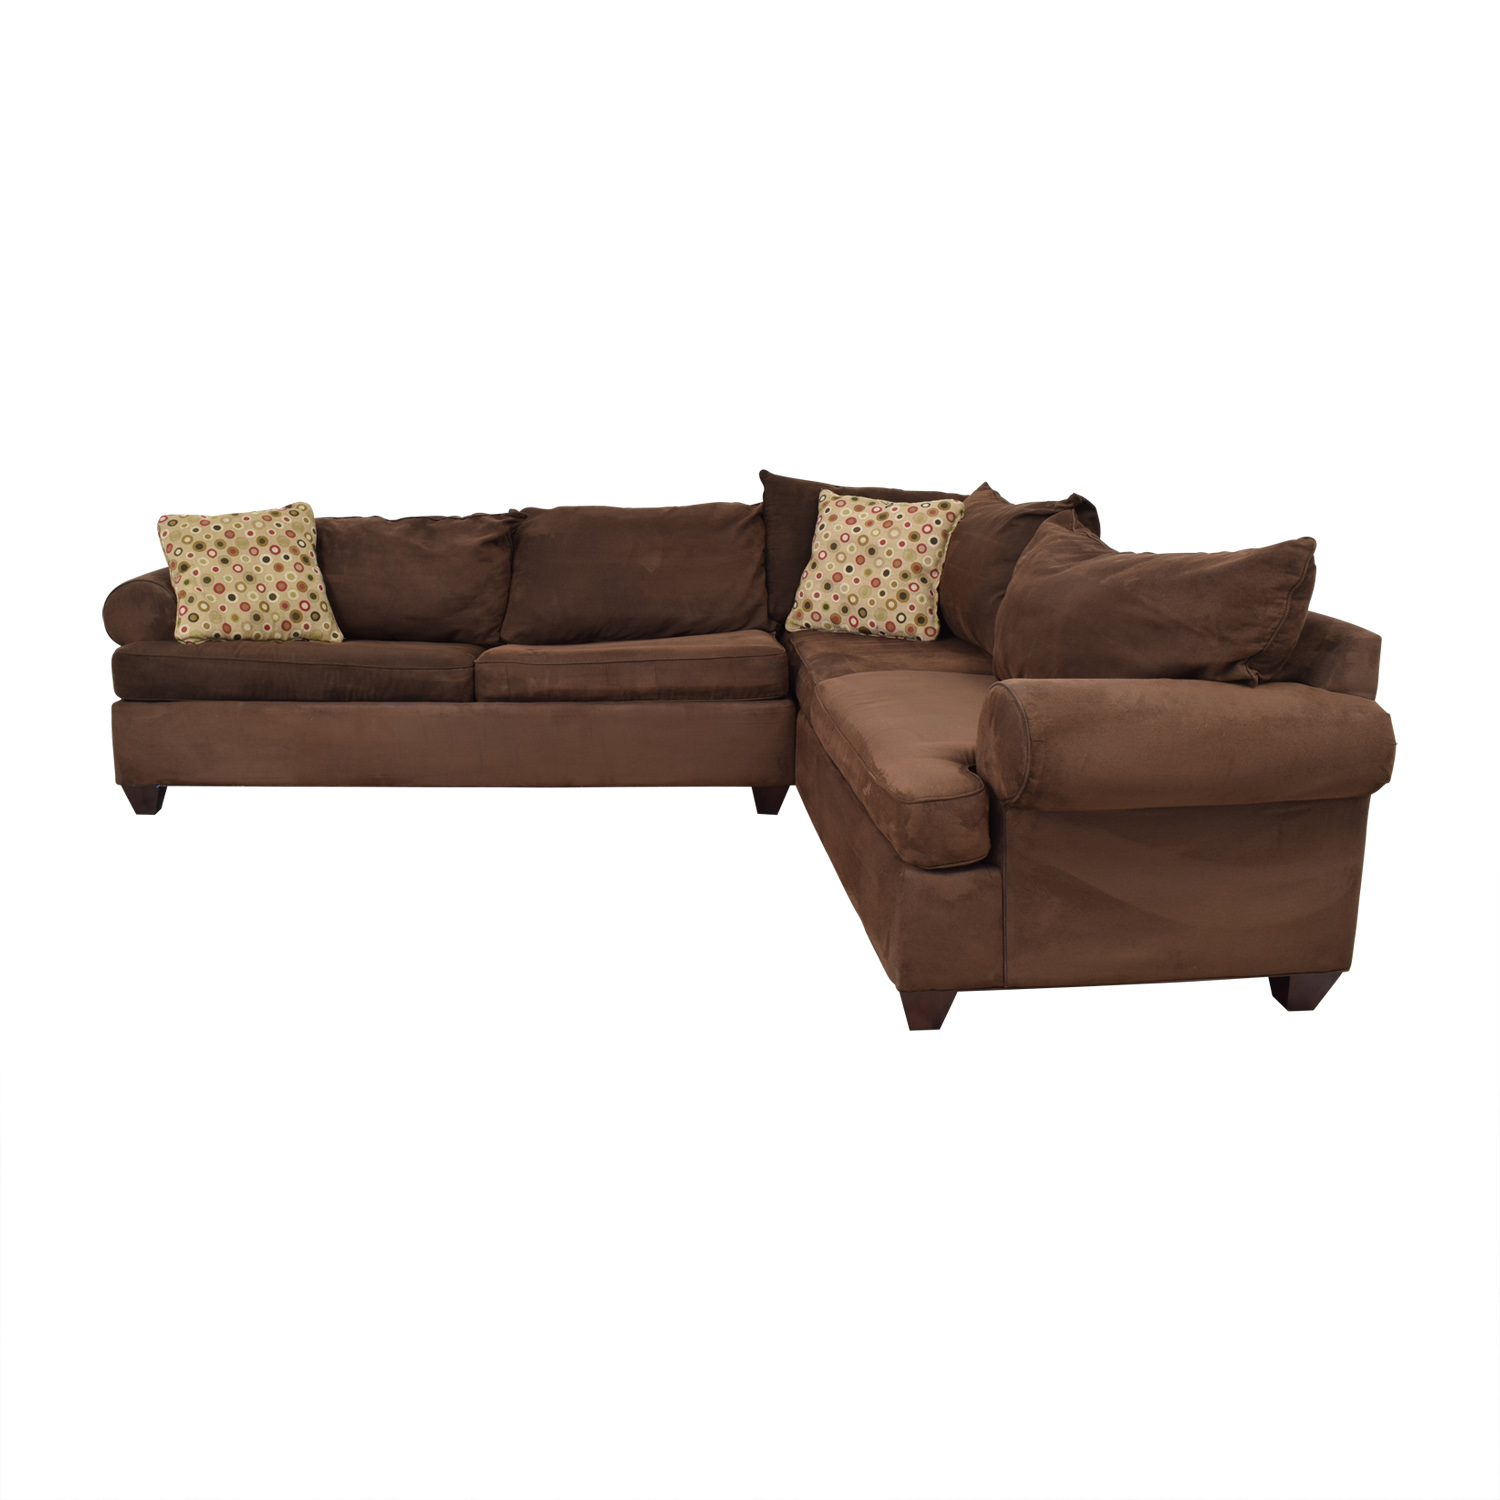 Raymour & Flanigan Raymour & Flanigan Brown L-Shaped Sectional With Pull-Out Convertible Bed Brown